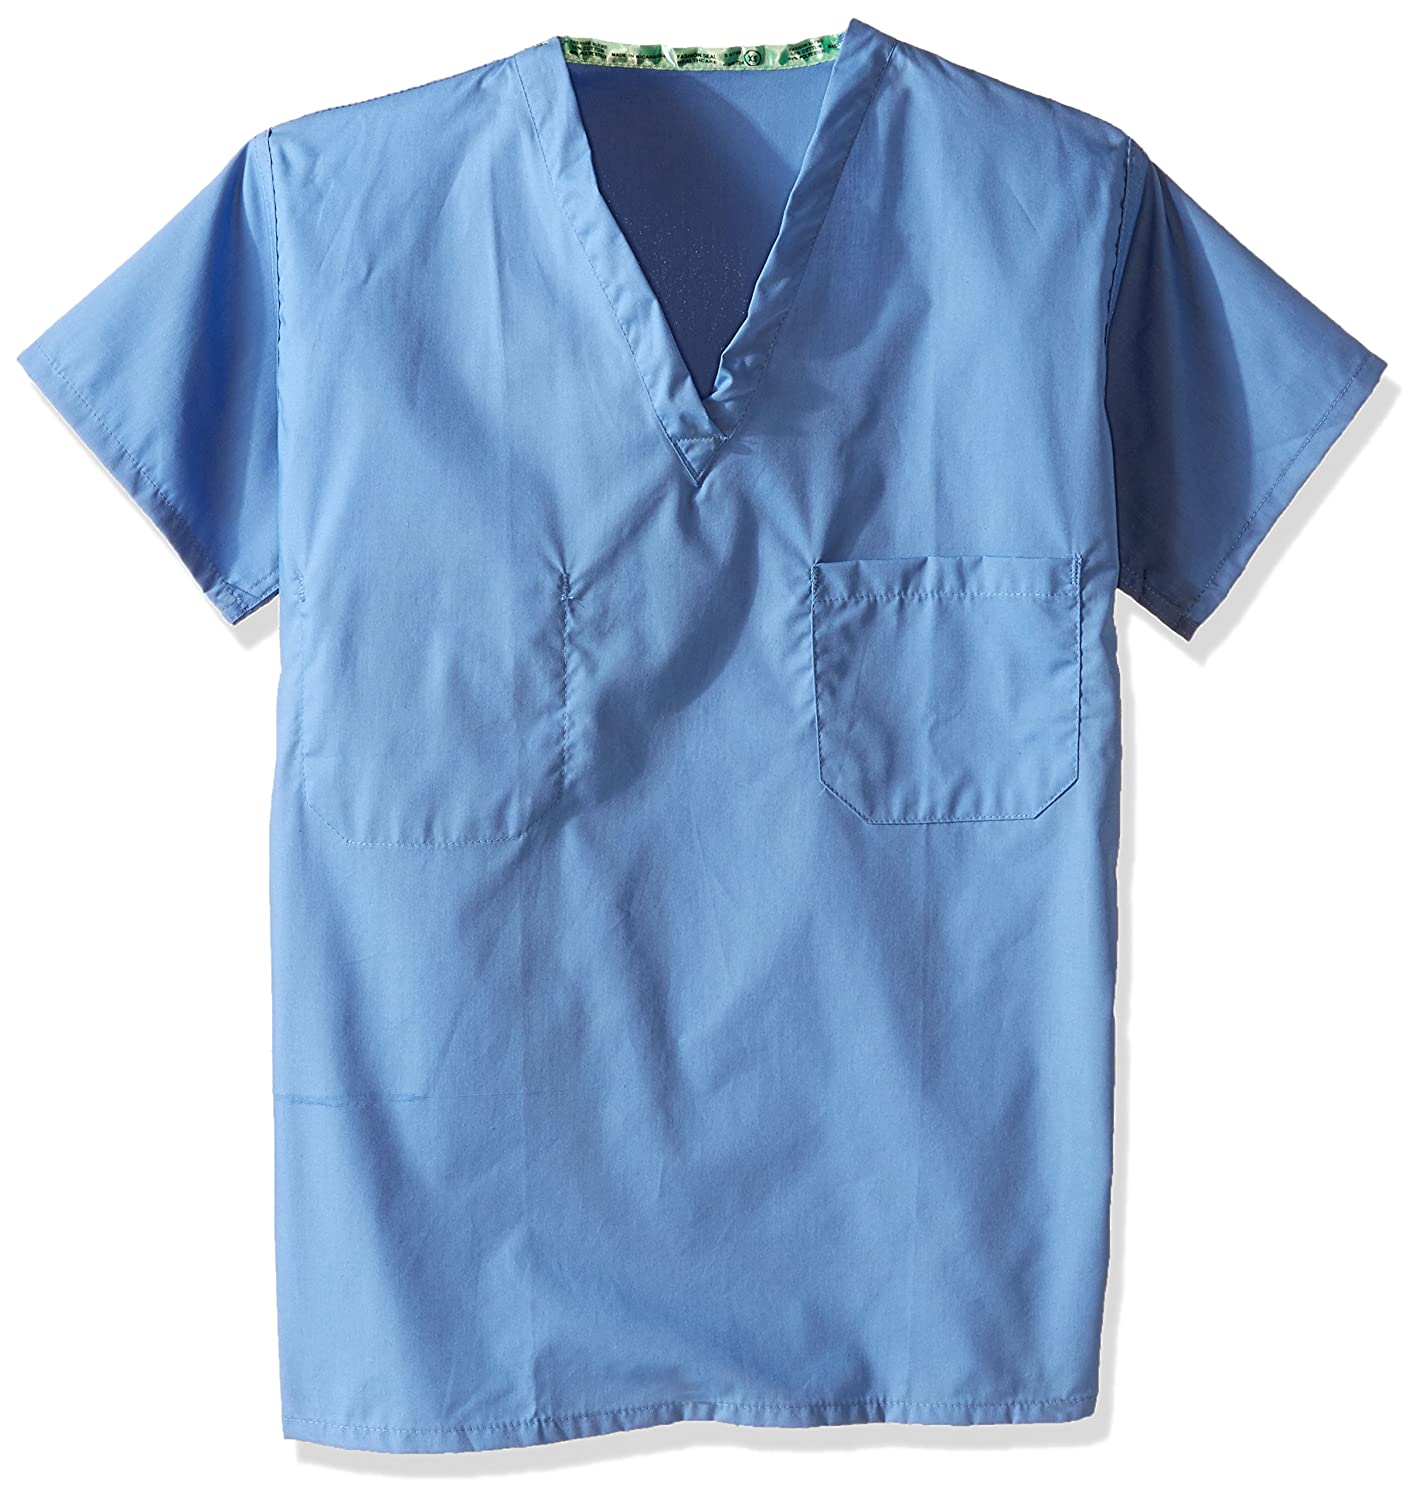 Worklon 6796 Polyester/Cotton Unisex Set-in Sleeve Scrub Shirt with Bartacked V-Neck, X-Small, Blue